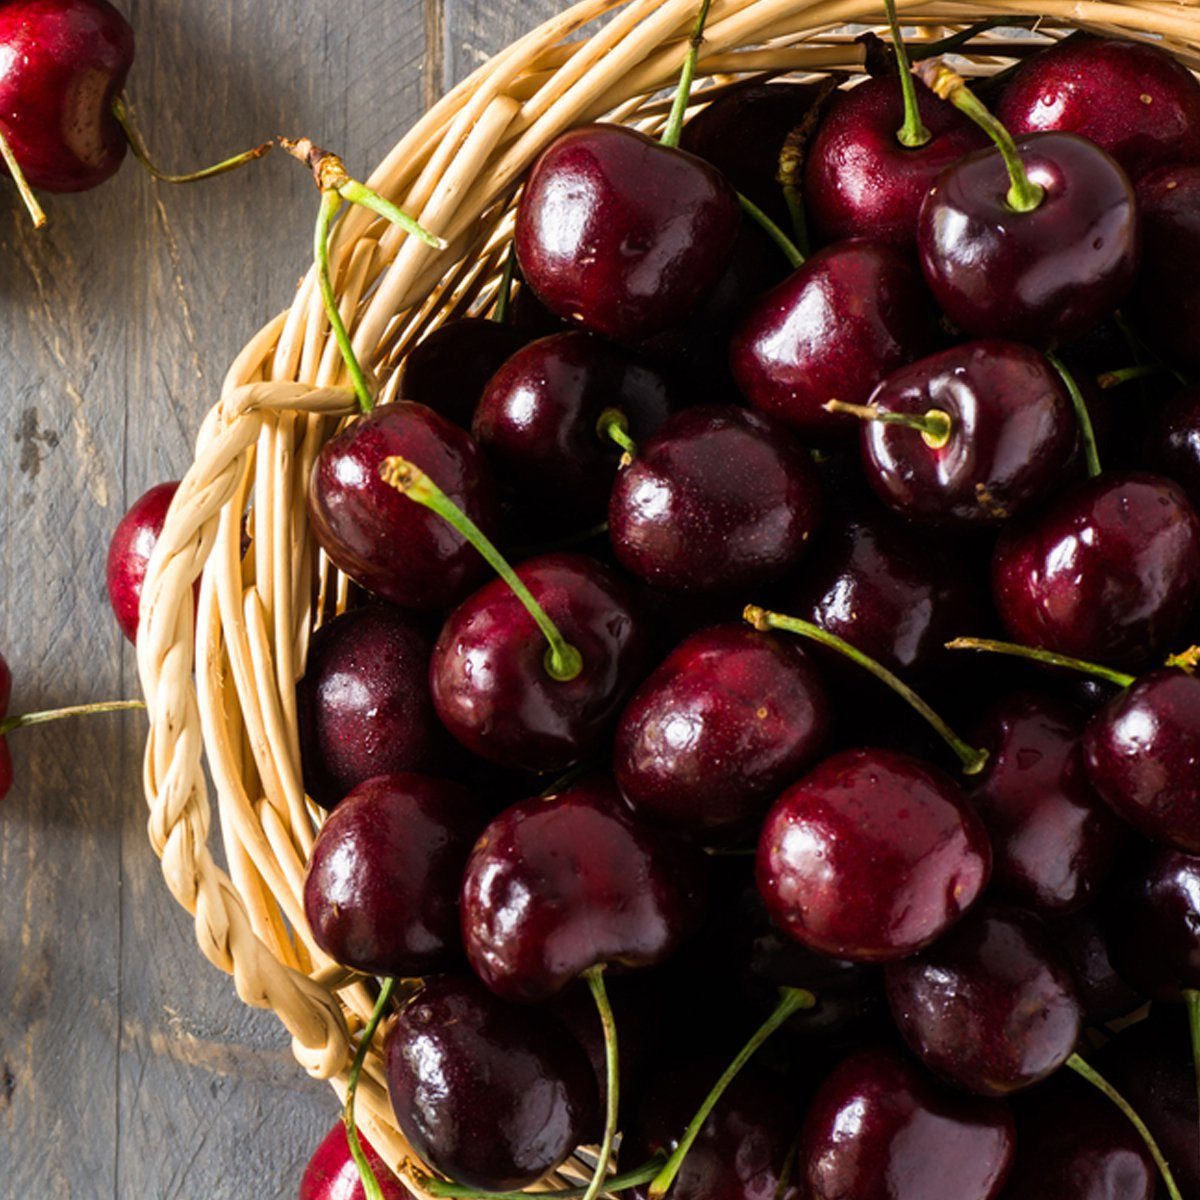 bunch of cherries in a wicker basket